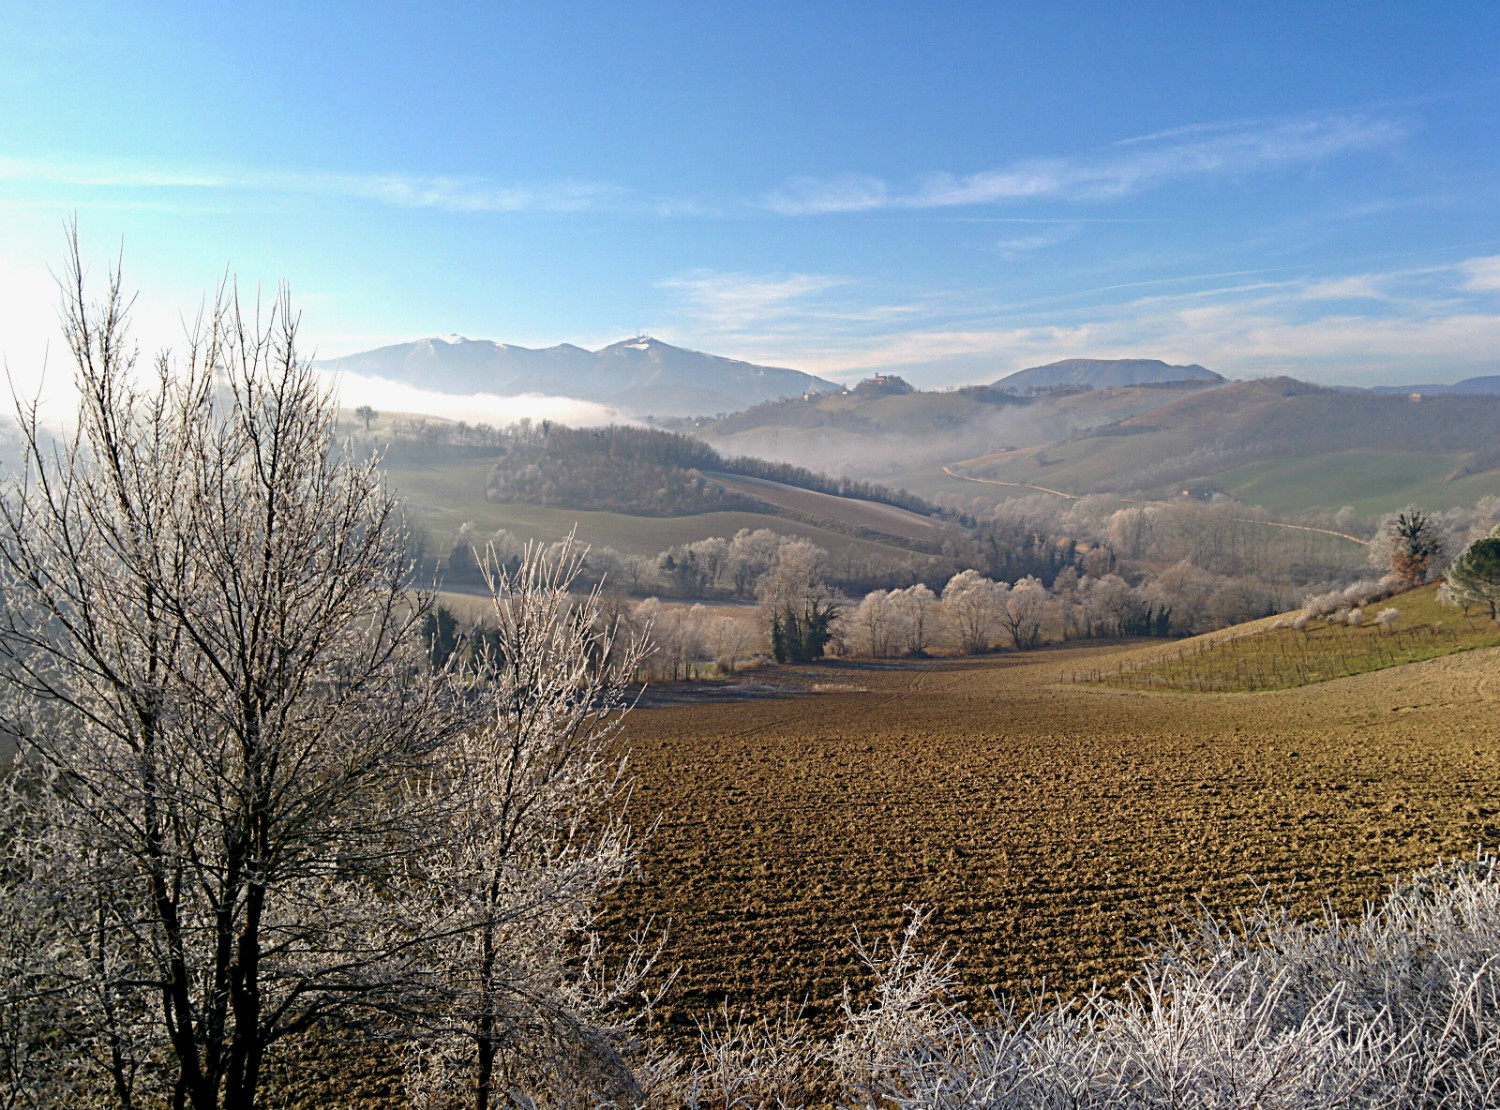 Winter holidays in Le Marche